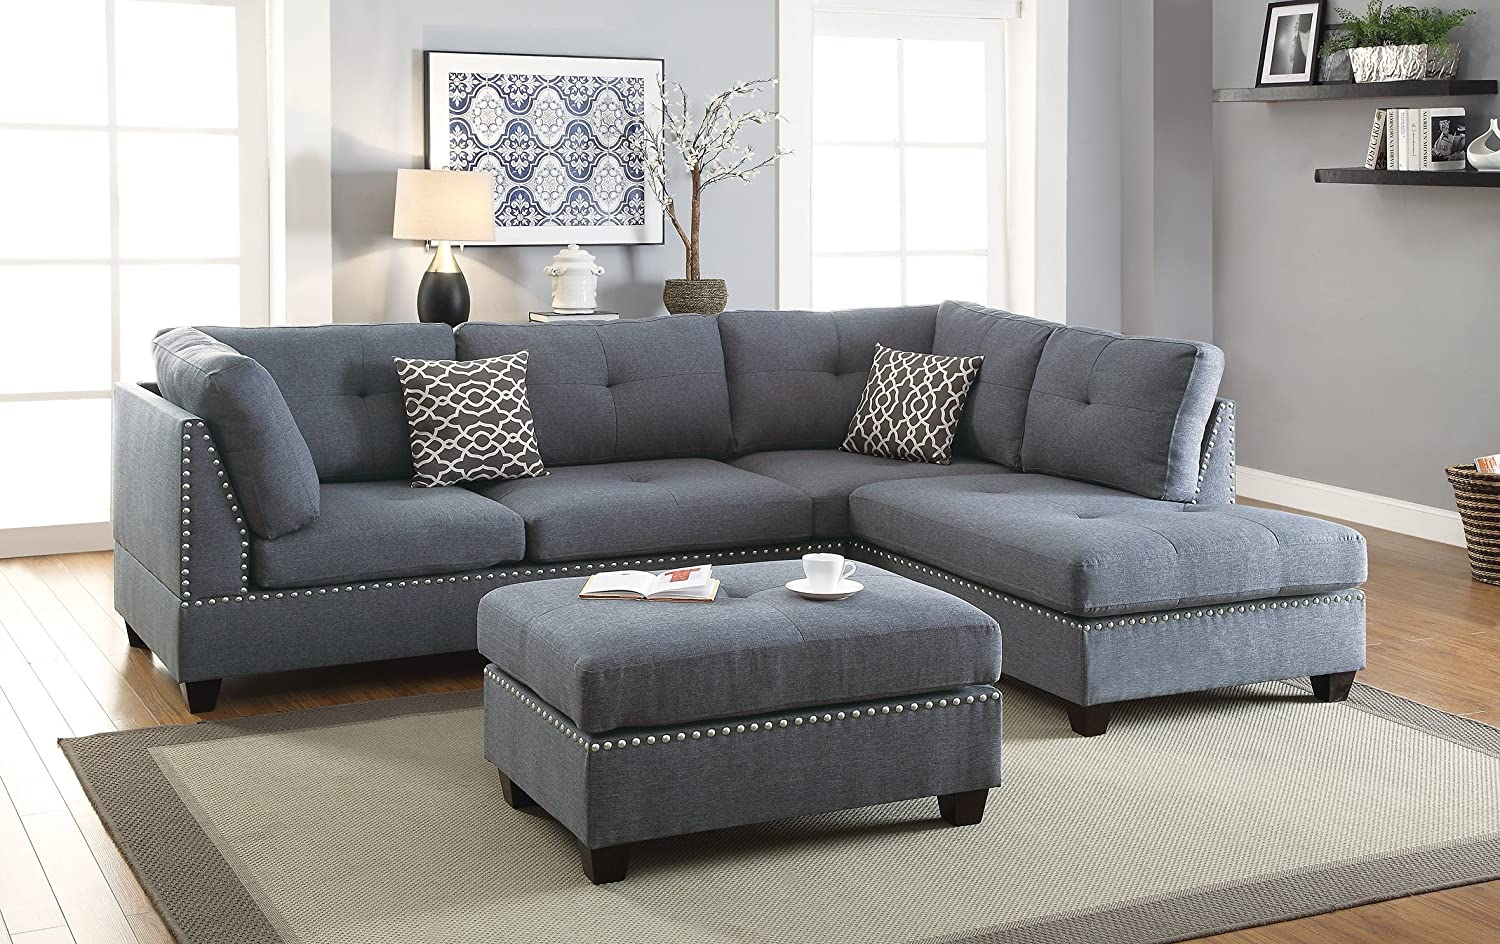 Amazon.com: 3 pieces Sectional Sofa Bobkona Blue Grey ...